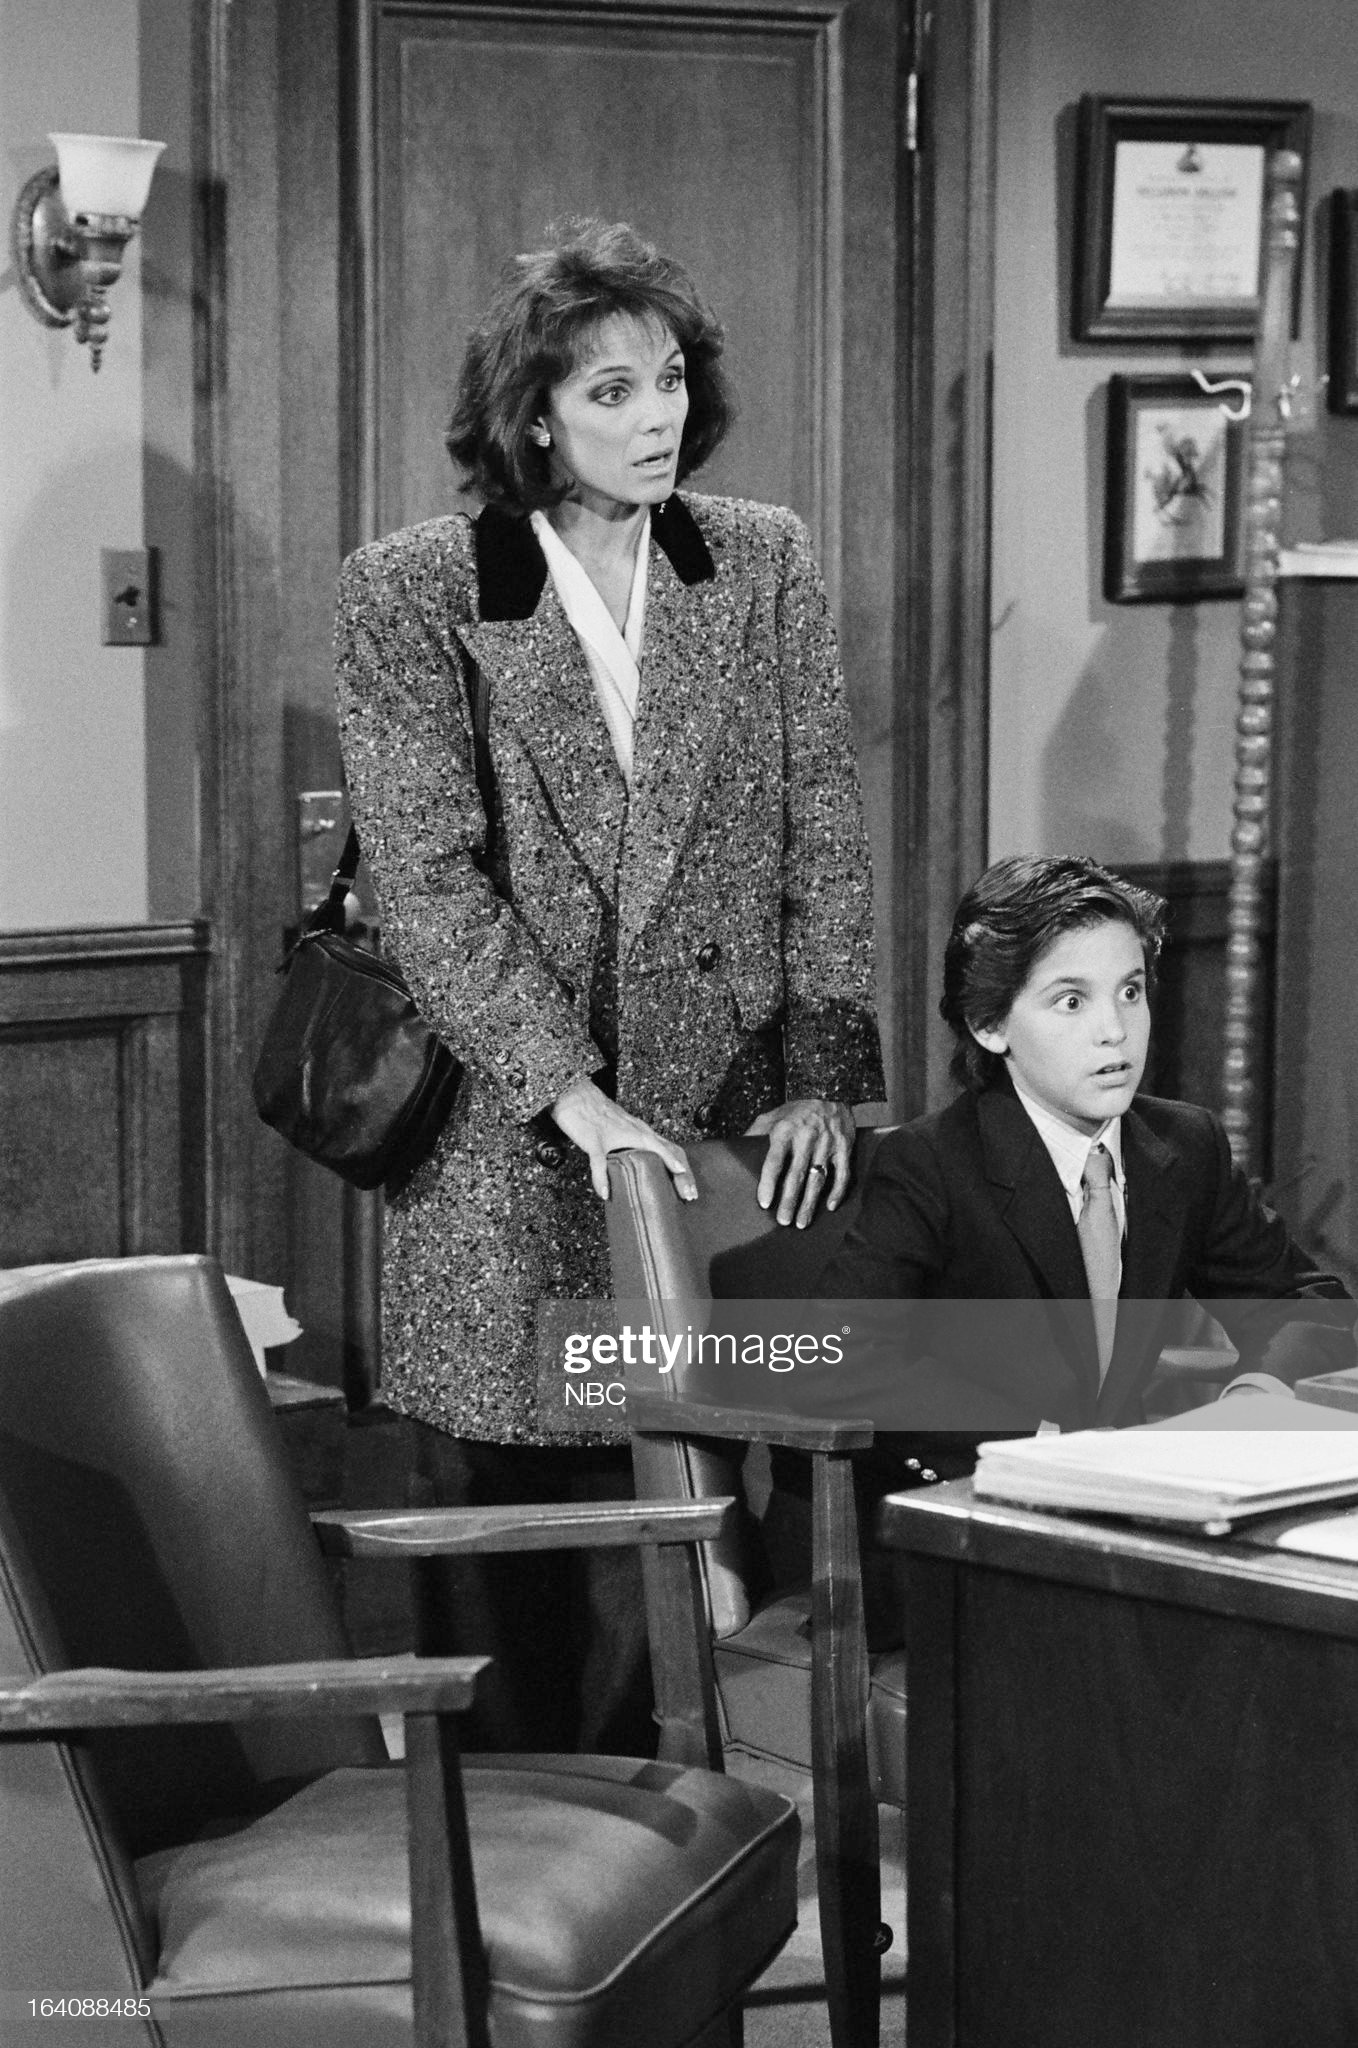 full-moon-episode-201-pictured-valerie-harper-as-valerie-hogan-jeremy-picture-id164088485